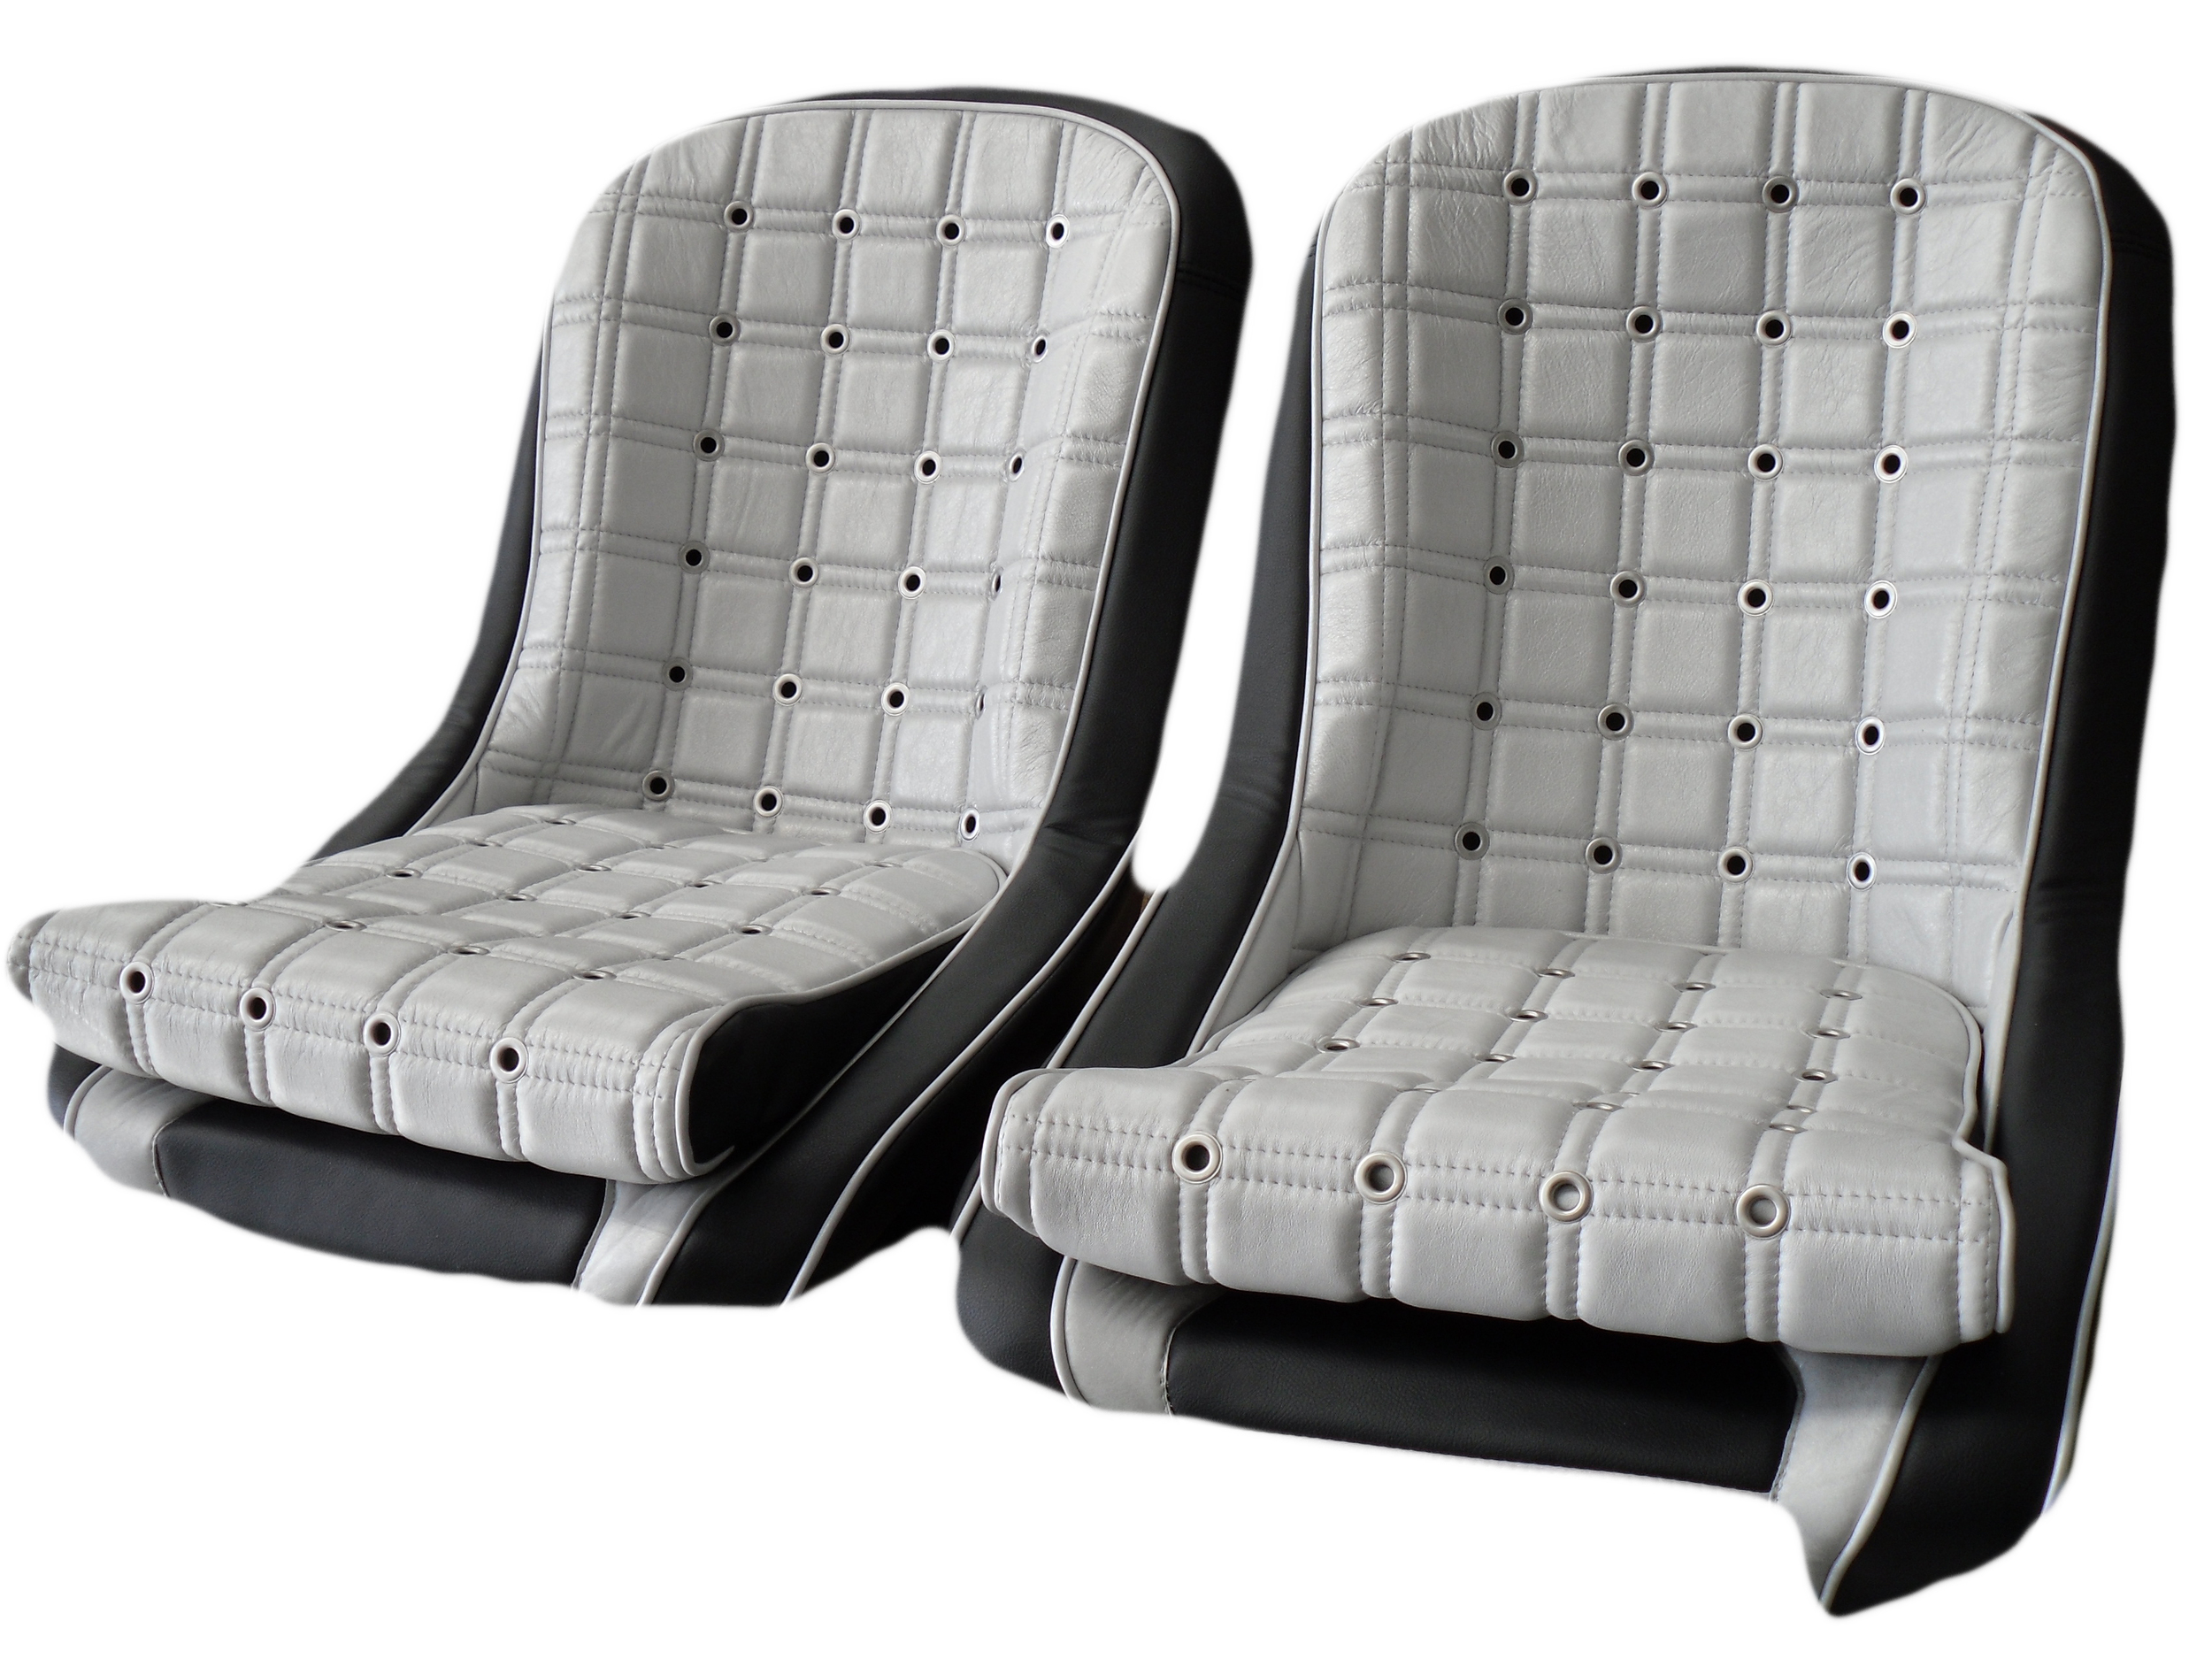 Cobra Seats with Stainless Steel Eyelets.jpg